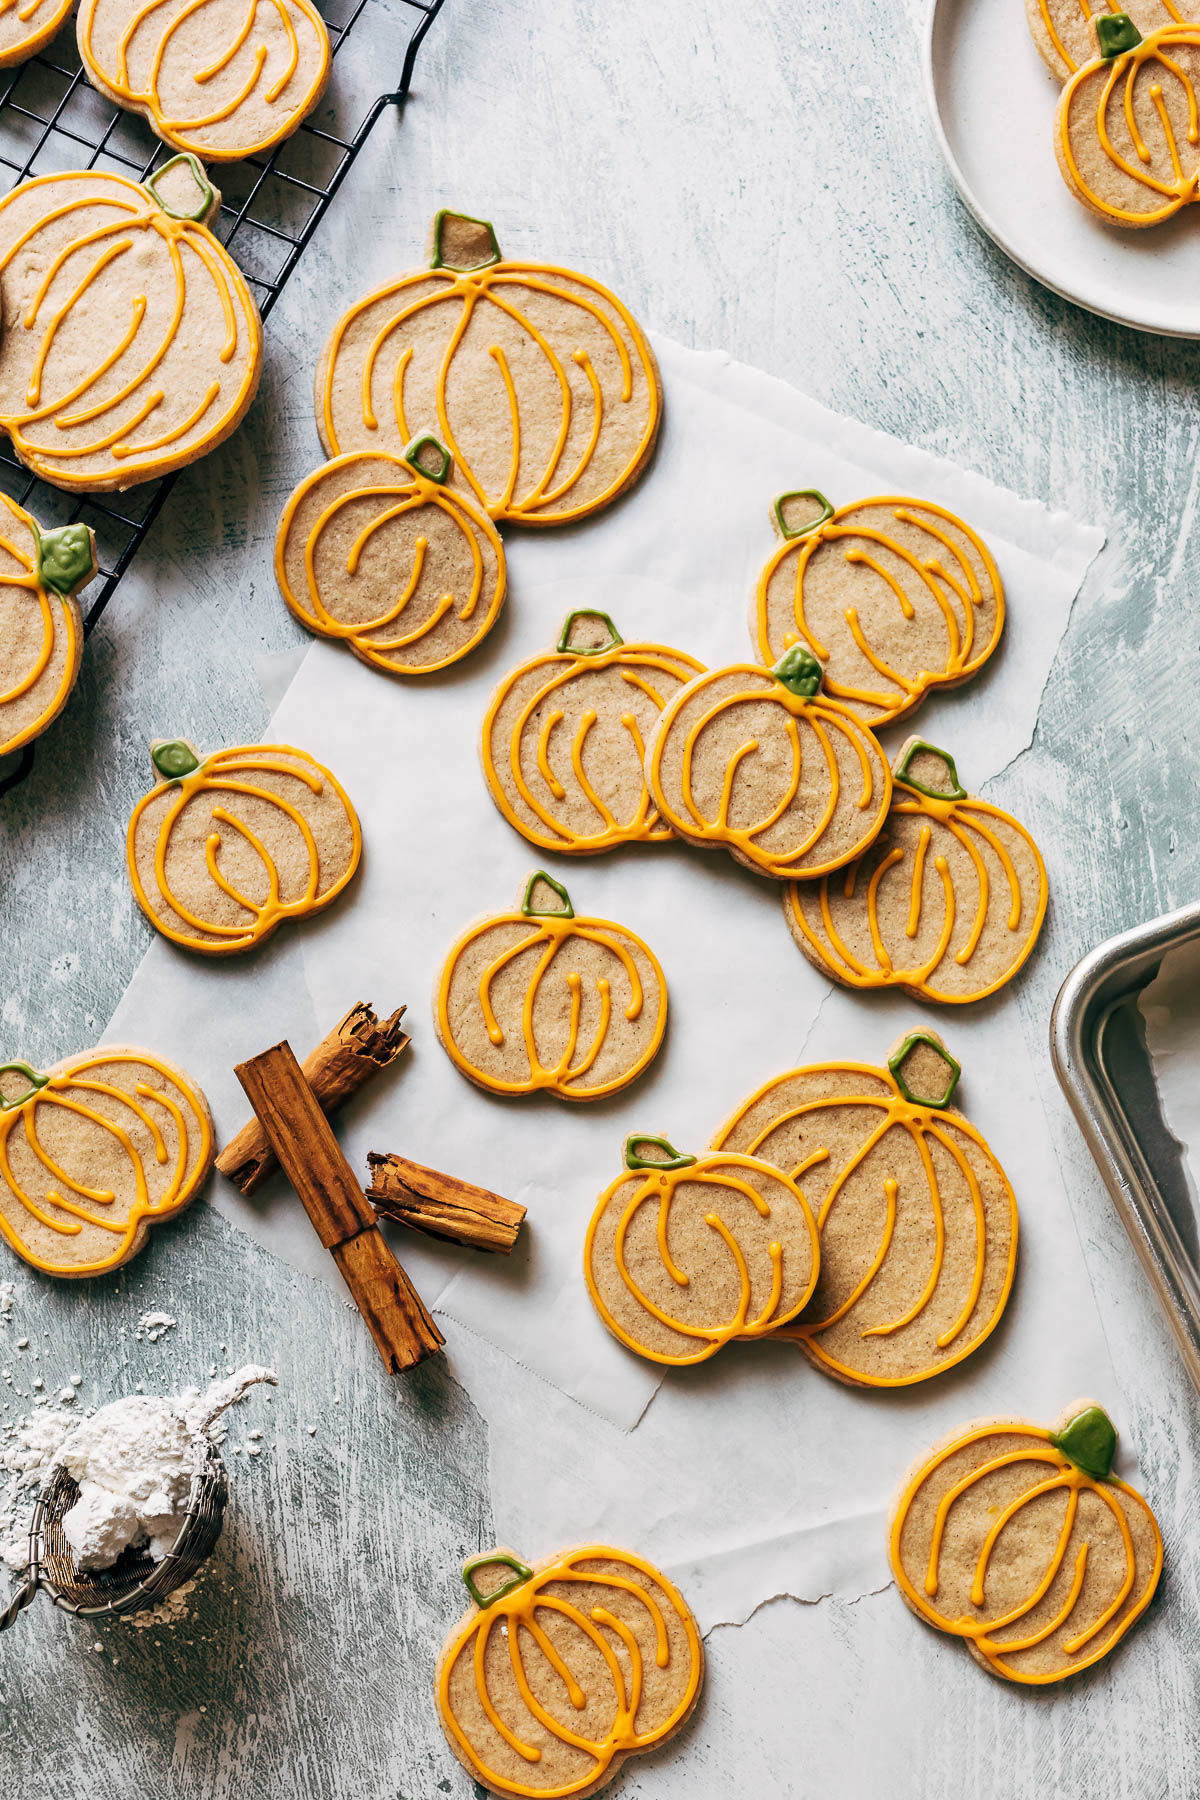 Pumpkin shaped sugar cookies with orange and green icing.